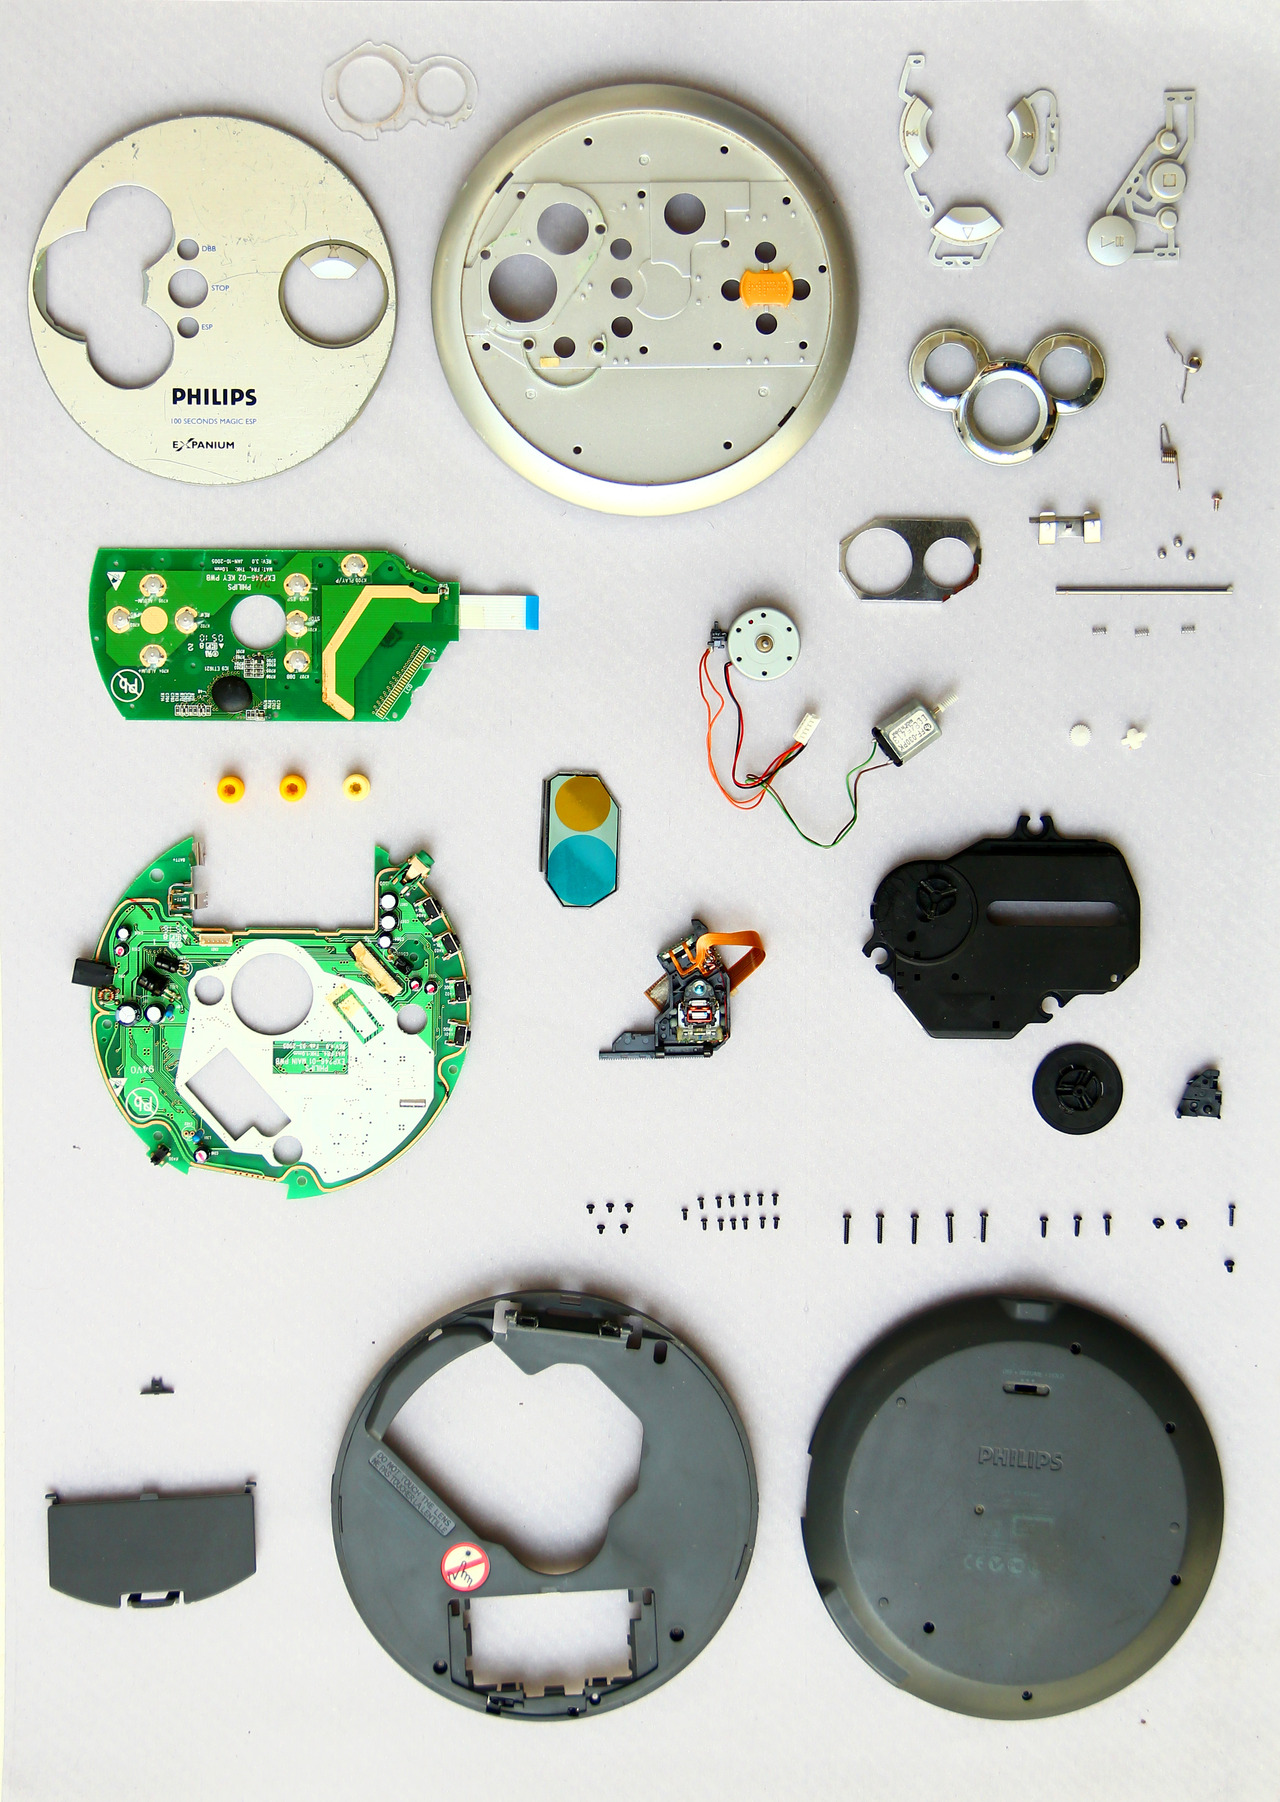 thingsorganizedneatly: SUBMISSION:Disassembly, and sistematic organization of an old, unfunctioning Discman, as a practical assignment for the subject Introduction to Industrial Design of the career Industrial Design - Universidad Nacional de Córdoba - Argentina. Extraordinary machine. In parts and pieces.